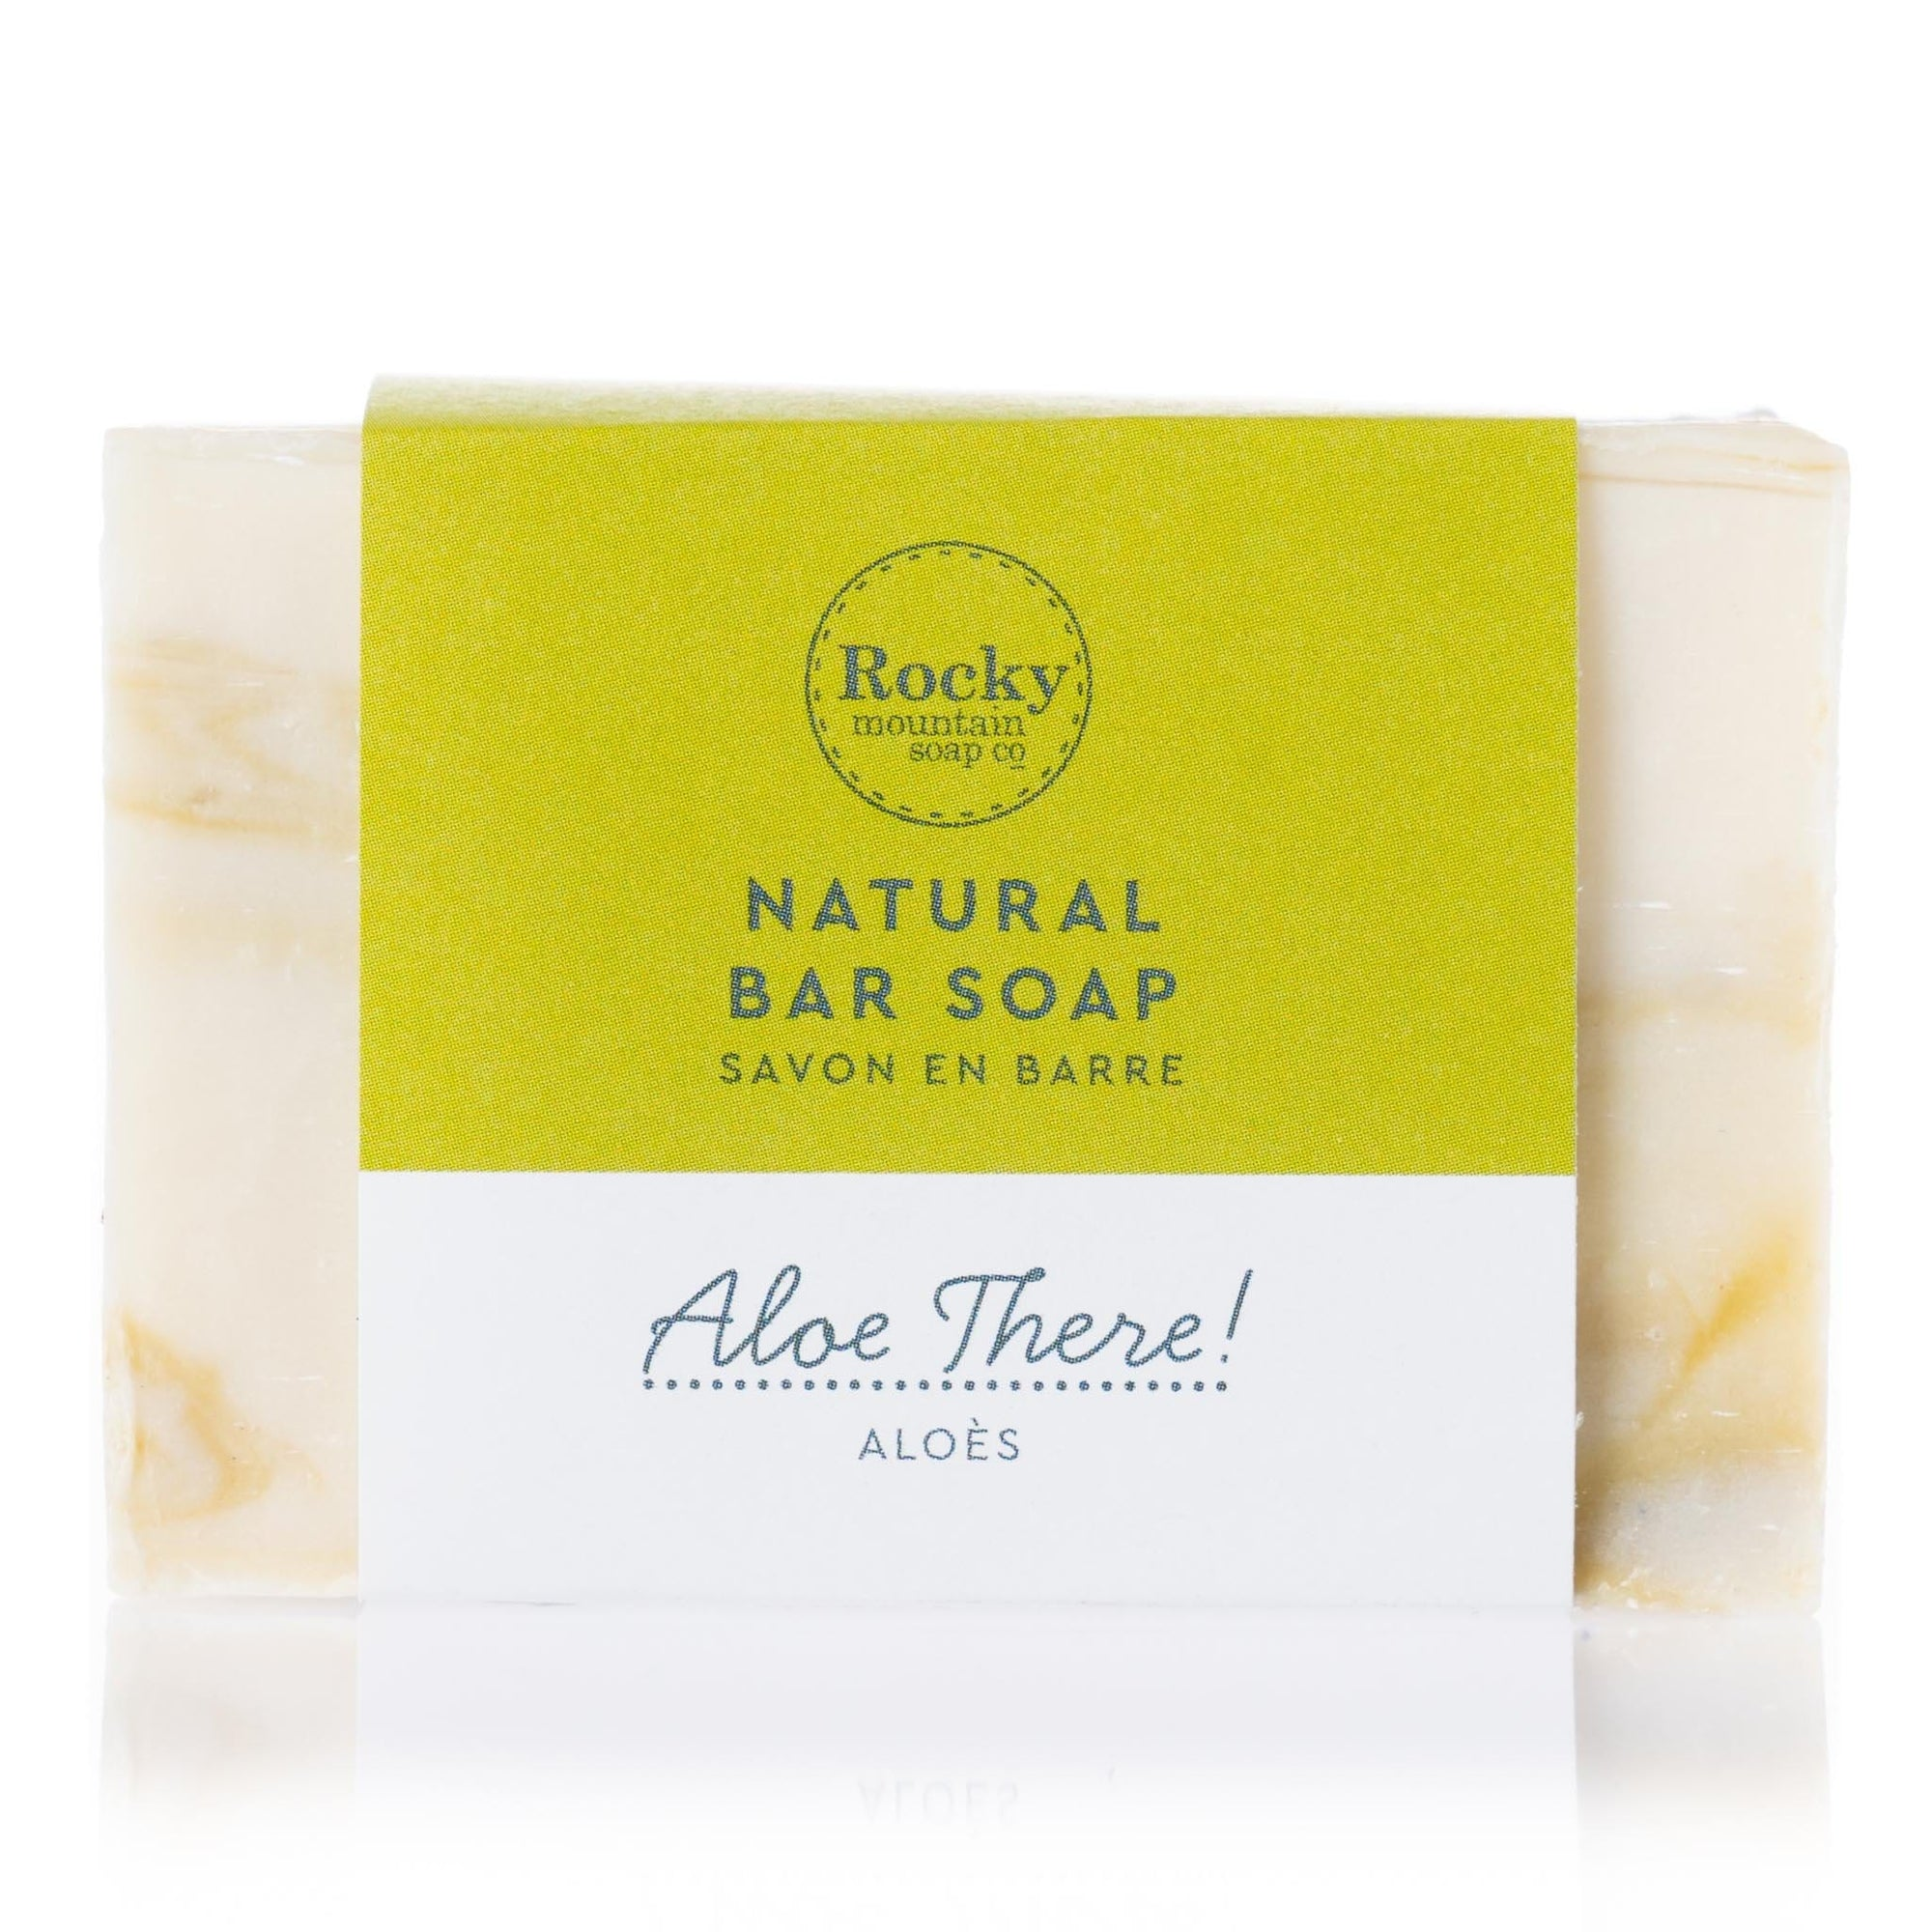 Aloe There Soap